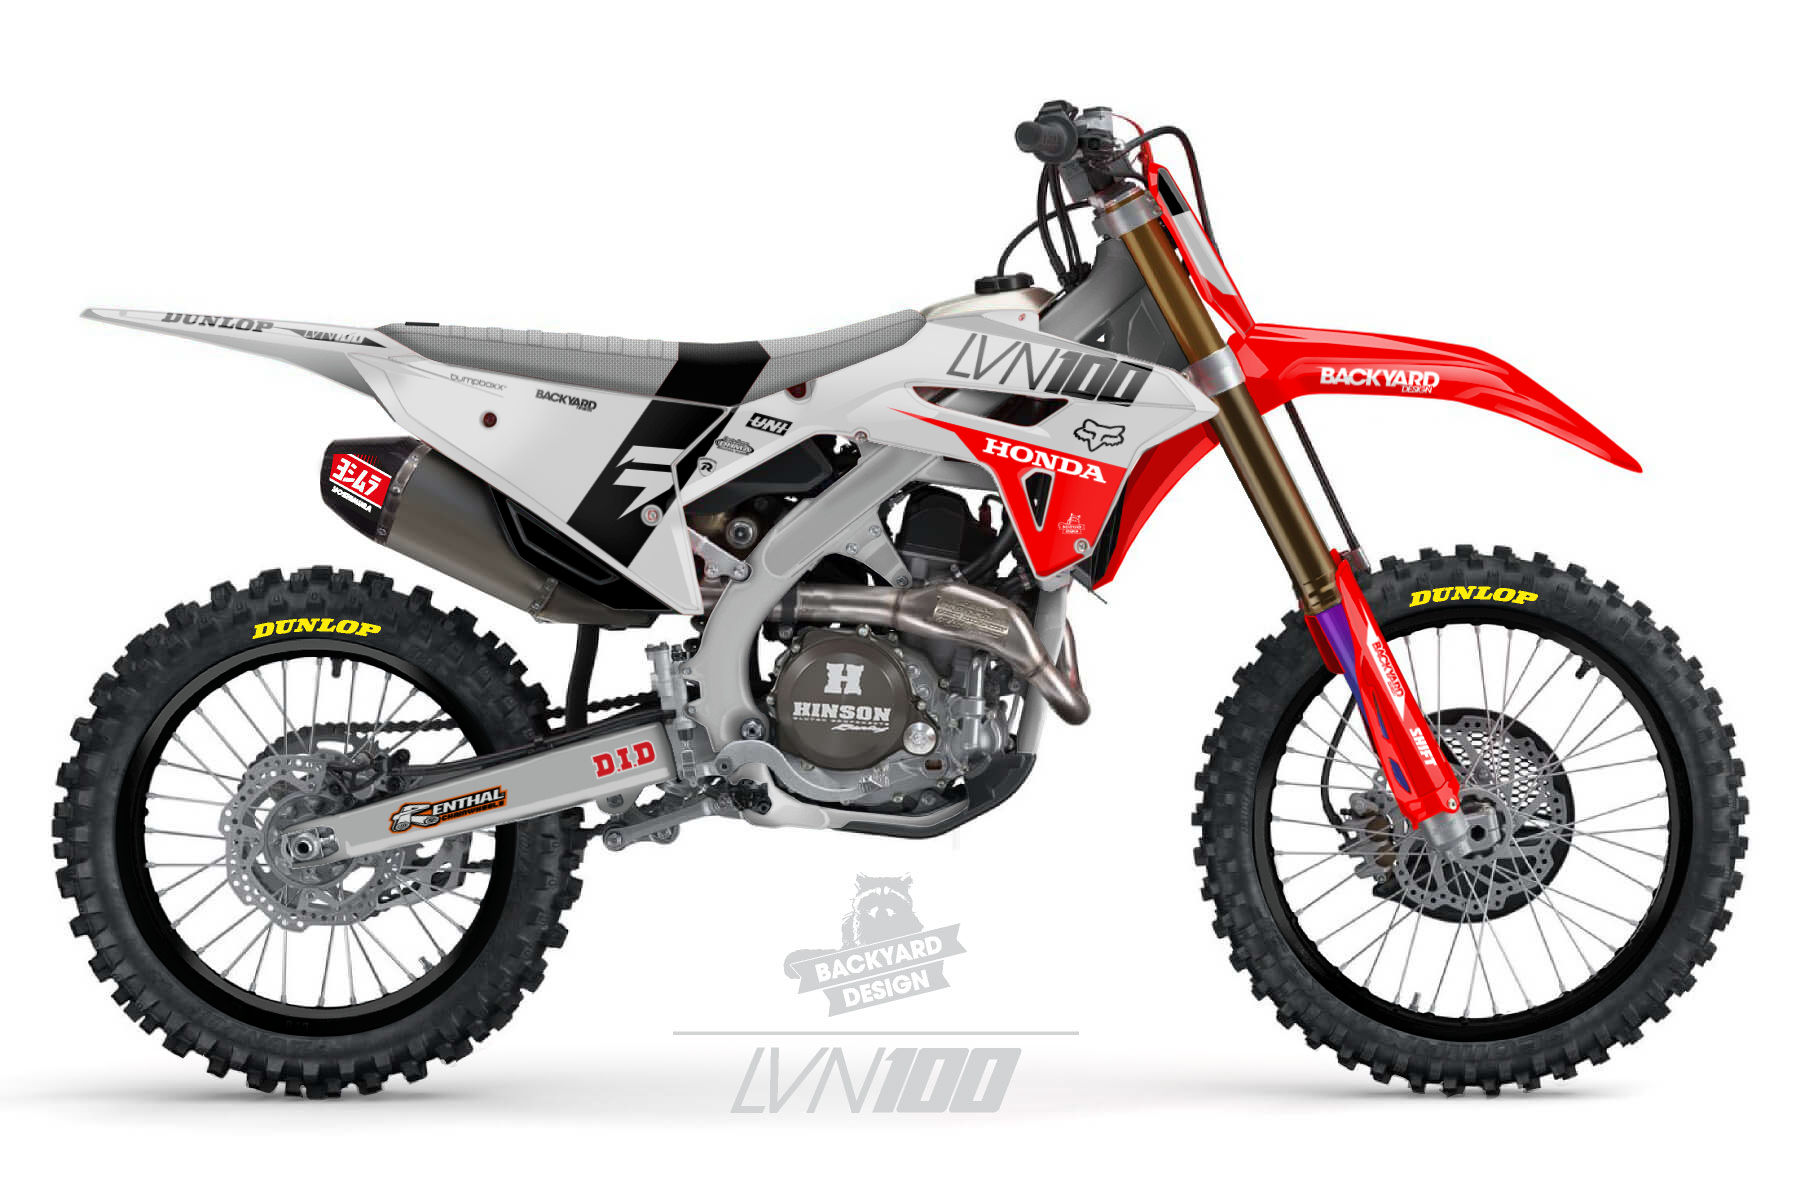 Honda CRF450R MX Graphic Kits  This bike was built to dominate the competition and higher your ambition. With the CRF450R you are as close to a factory bike as can be.